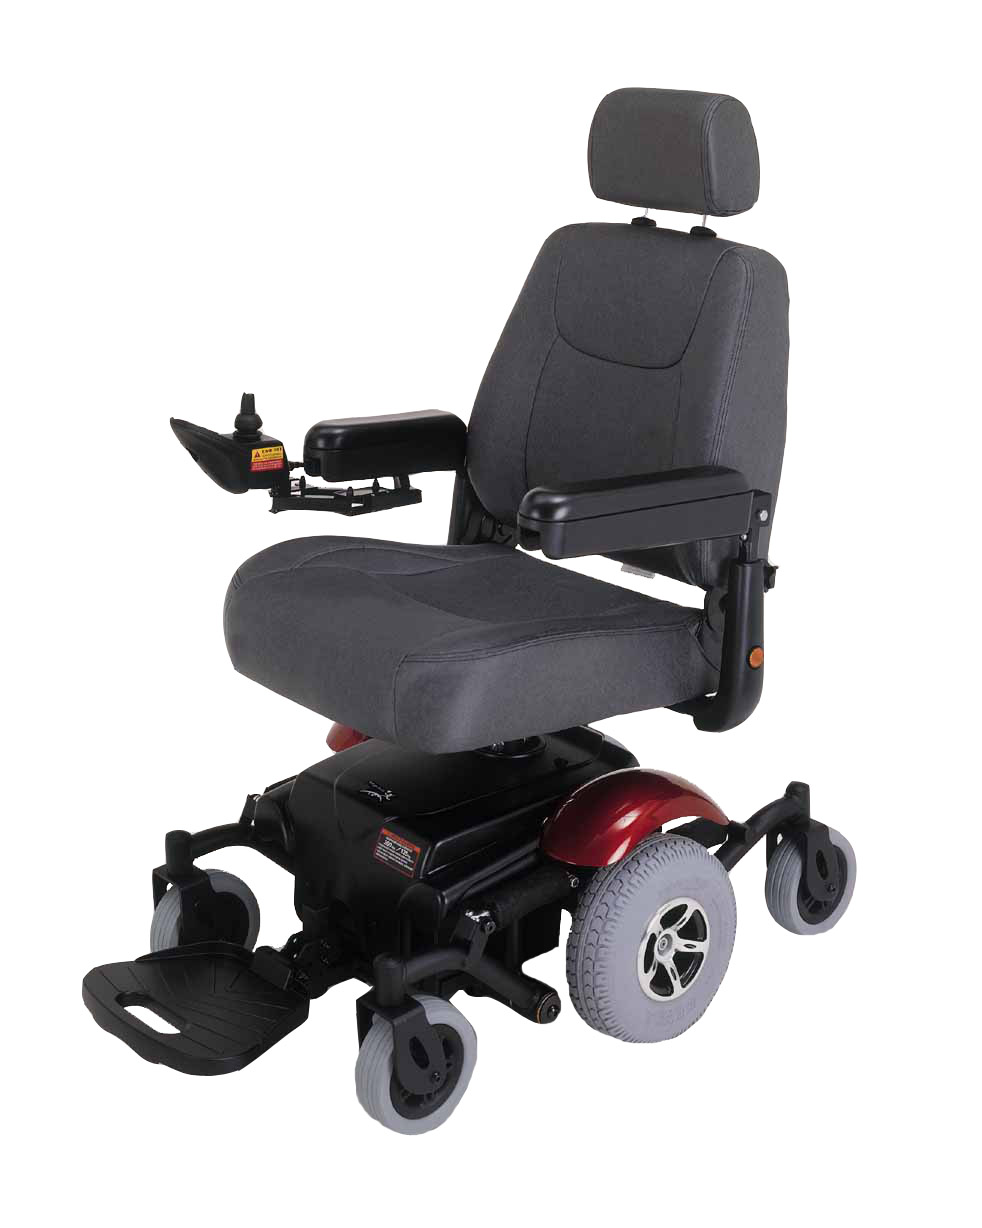 places that buy used electric wheelchairs, electric wheelchairs houston tx, electric wheelchair jackson mi, electric push wheelchairs